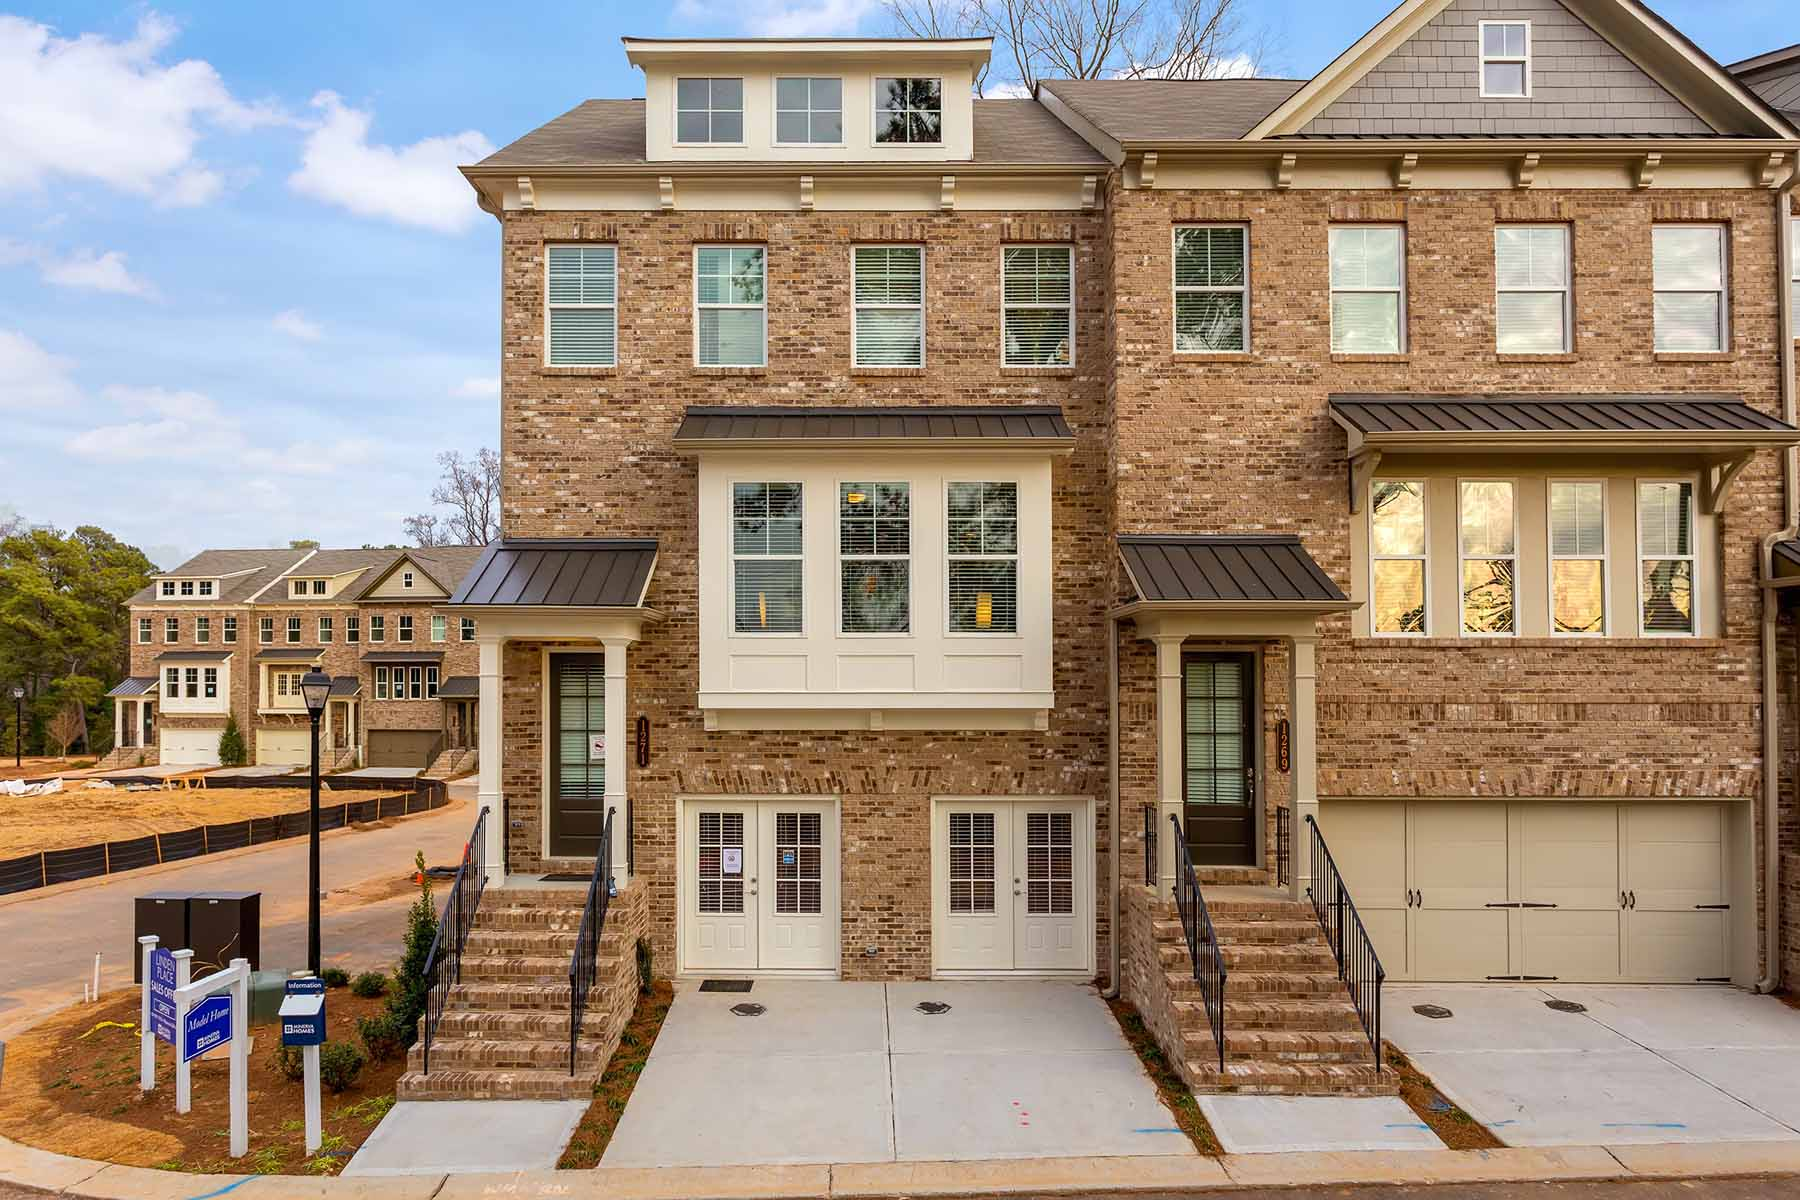 Townhouse for Sale at Linden Place offers unmatched convenience, lifestyle and luxury townhome living! 1282 Linden Court Atlanta, Georgia 30329 United States